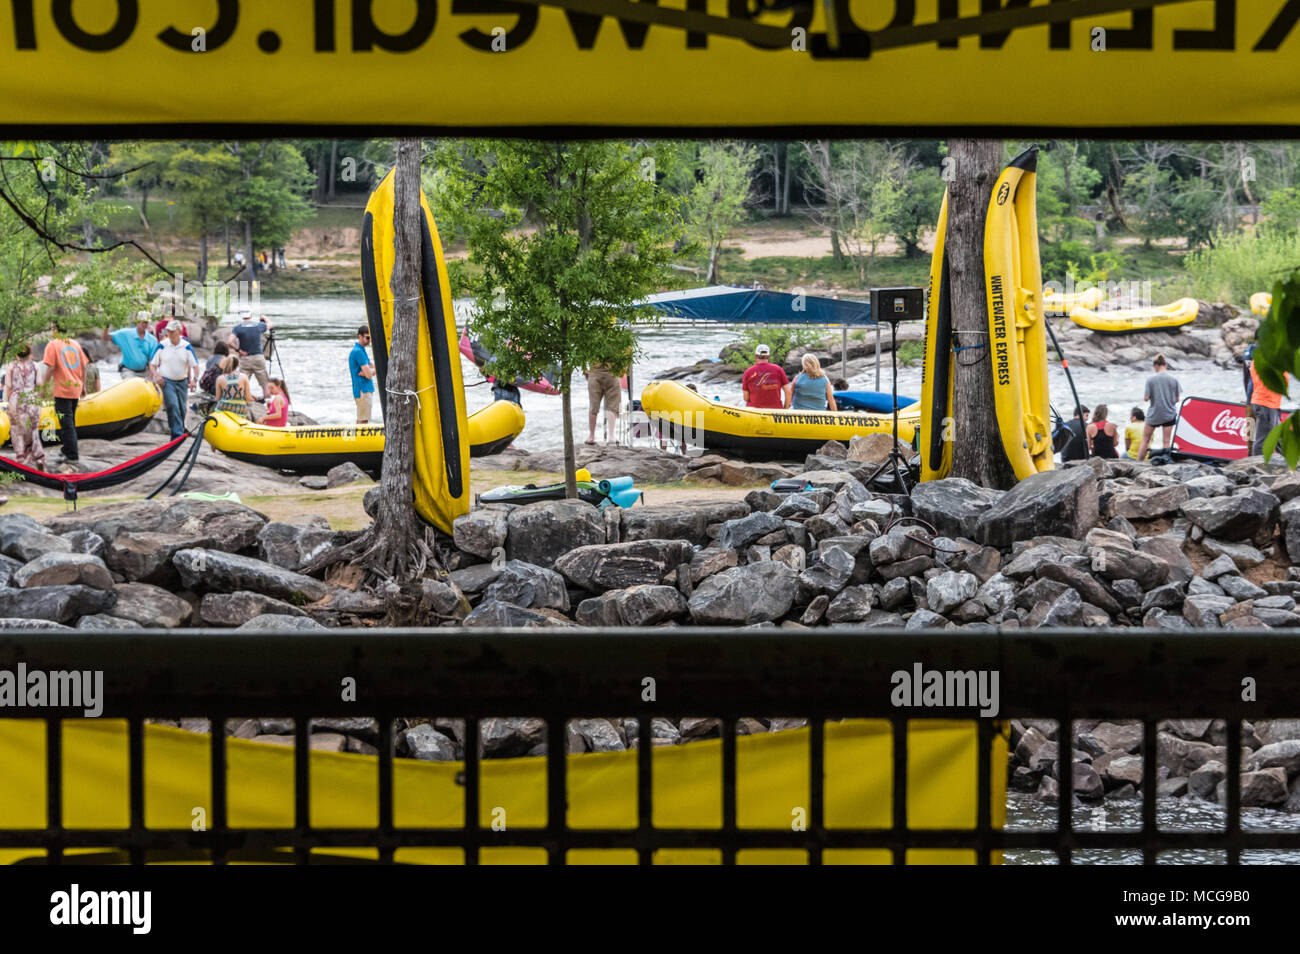 Whitewater rafts abound at Paddle South in Columbus, GA as spectators gather for the USA Freestyle Kayak National Championship. - Stock Image